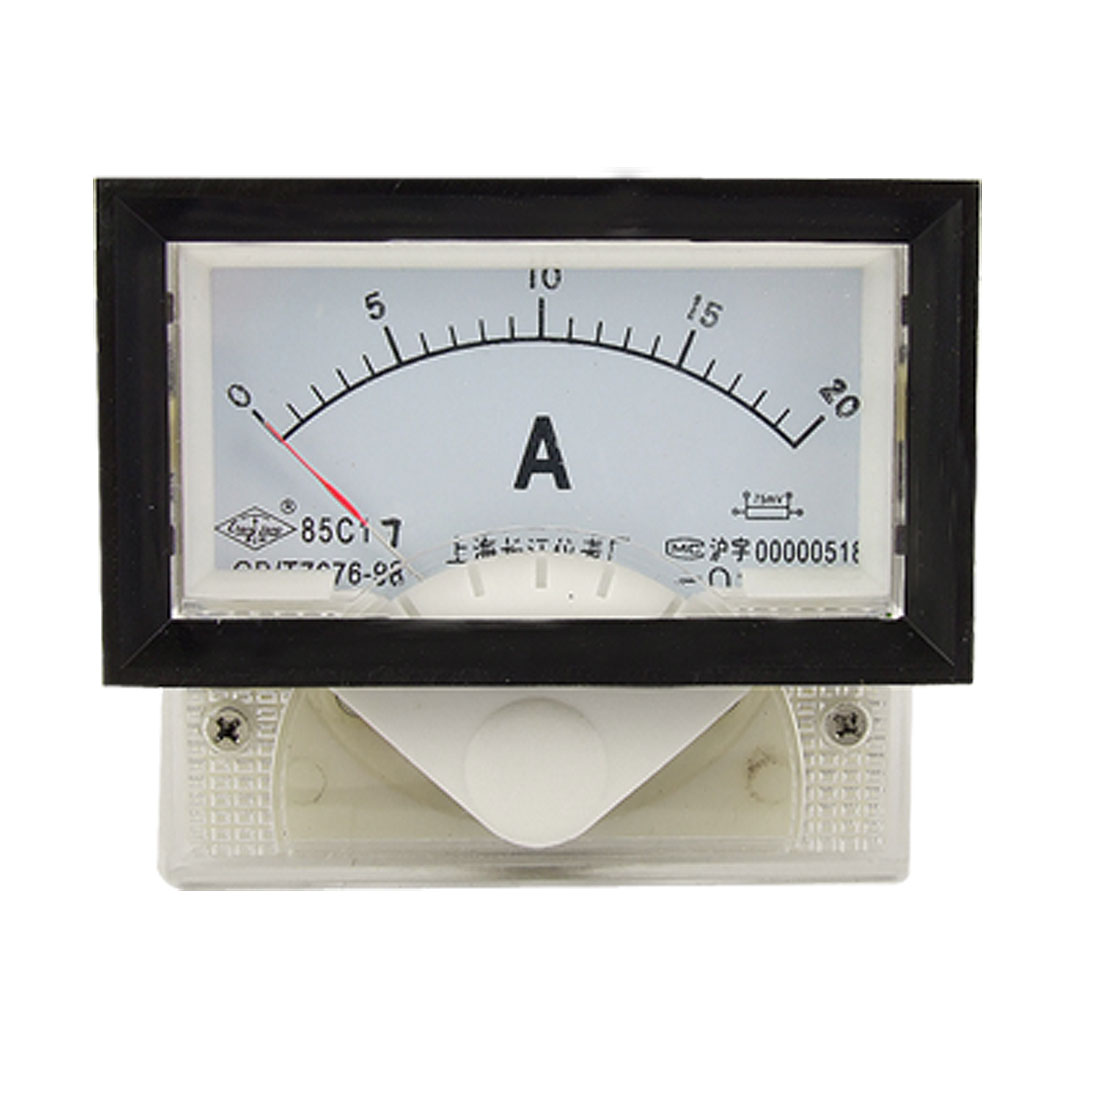 hight resolution of get quotations measure 85c17 dc 0 20a amp pointer analog panel ammeter 0 00ammeter20 0